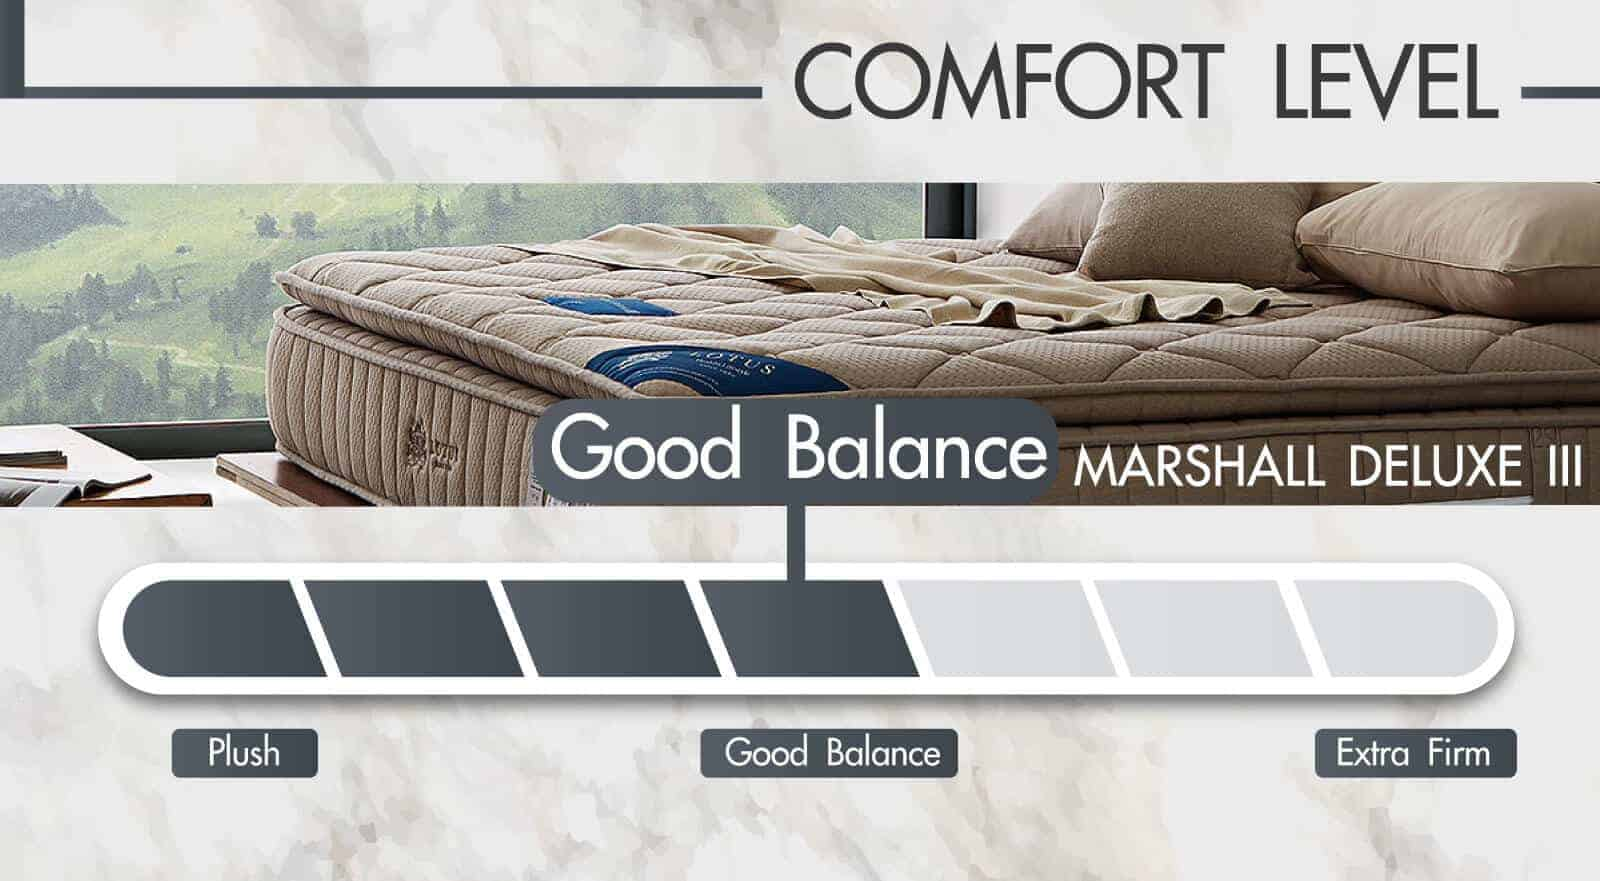 Lotus Foam Spring Mattress Marshall Deluxe III - Good Balance Mattress - Thickness 13 inches - Warranty 10 years 11